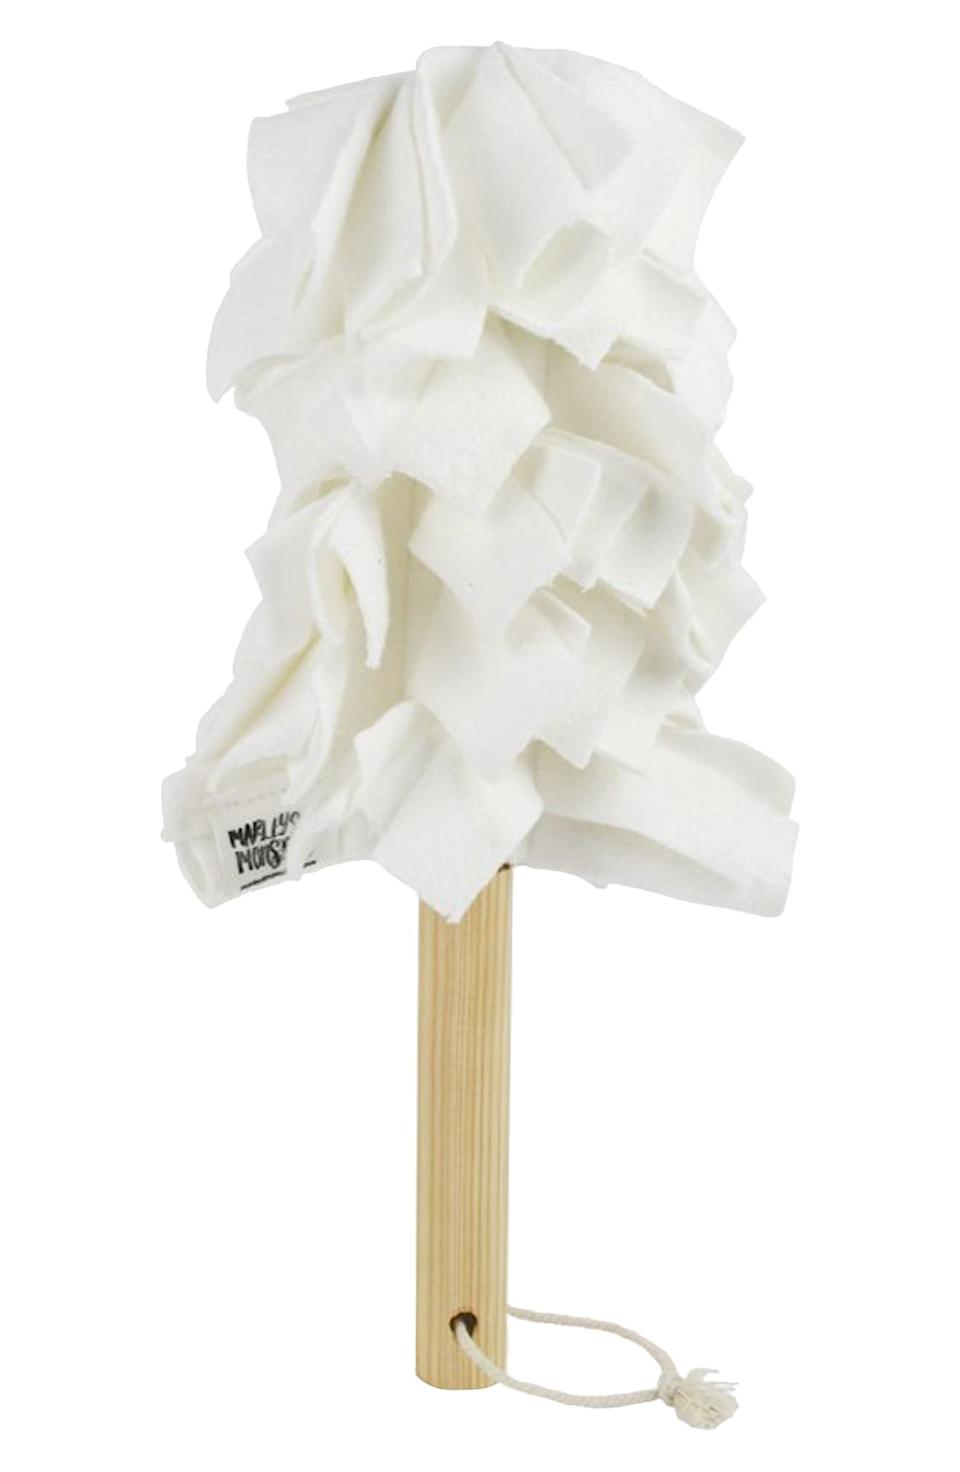 Package Free x Marley's Monsters Washable Fleece Duster & Wood Handle. Image via Nordstrom.